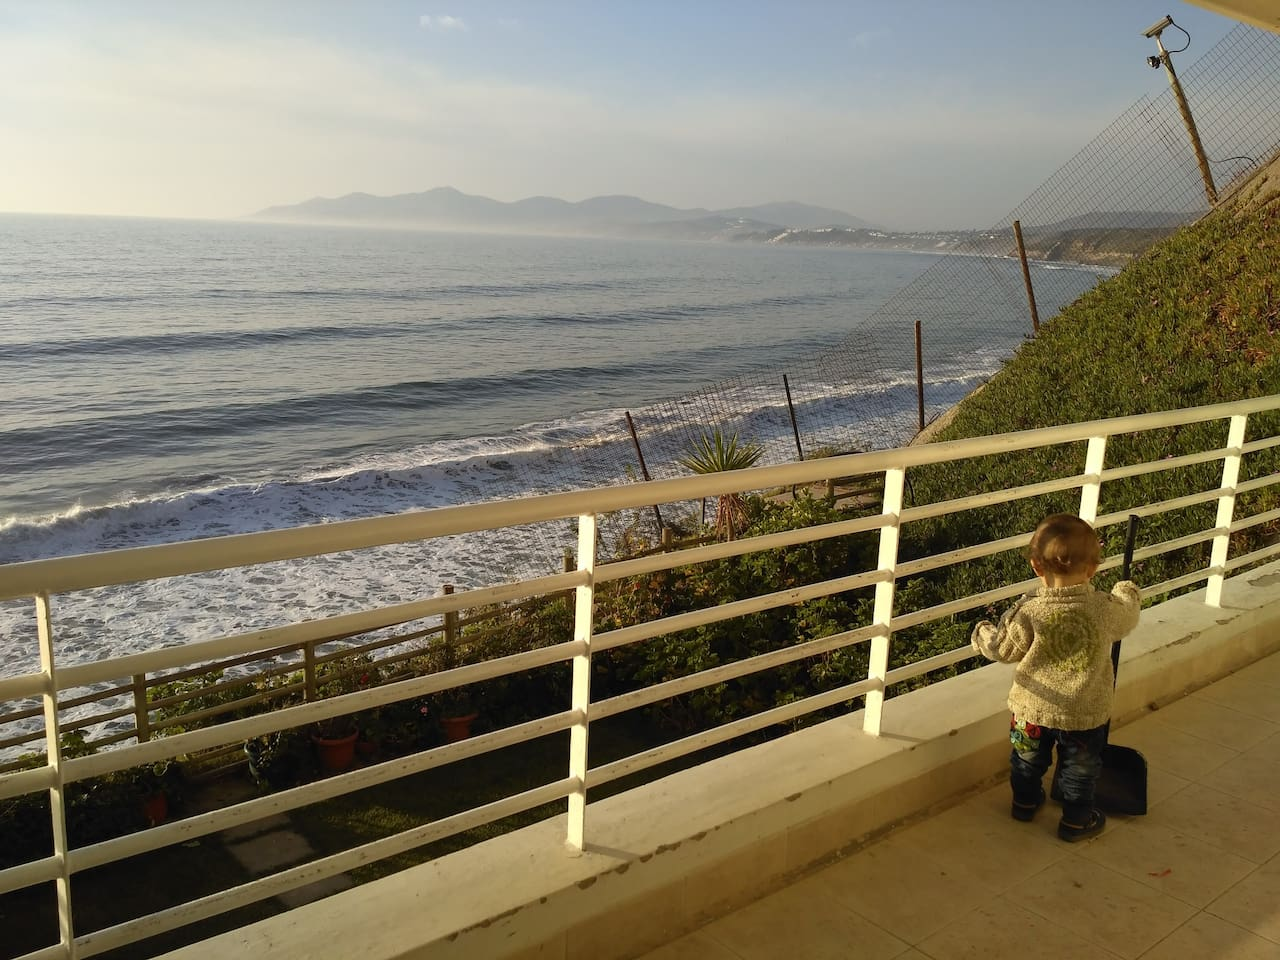 The view to the north, You can see Maitencillo, a surfers break.